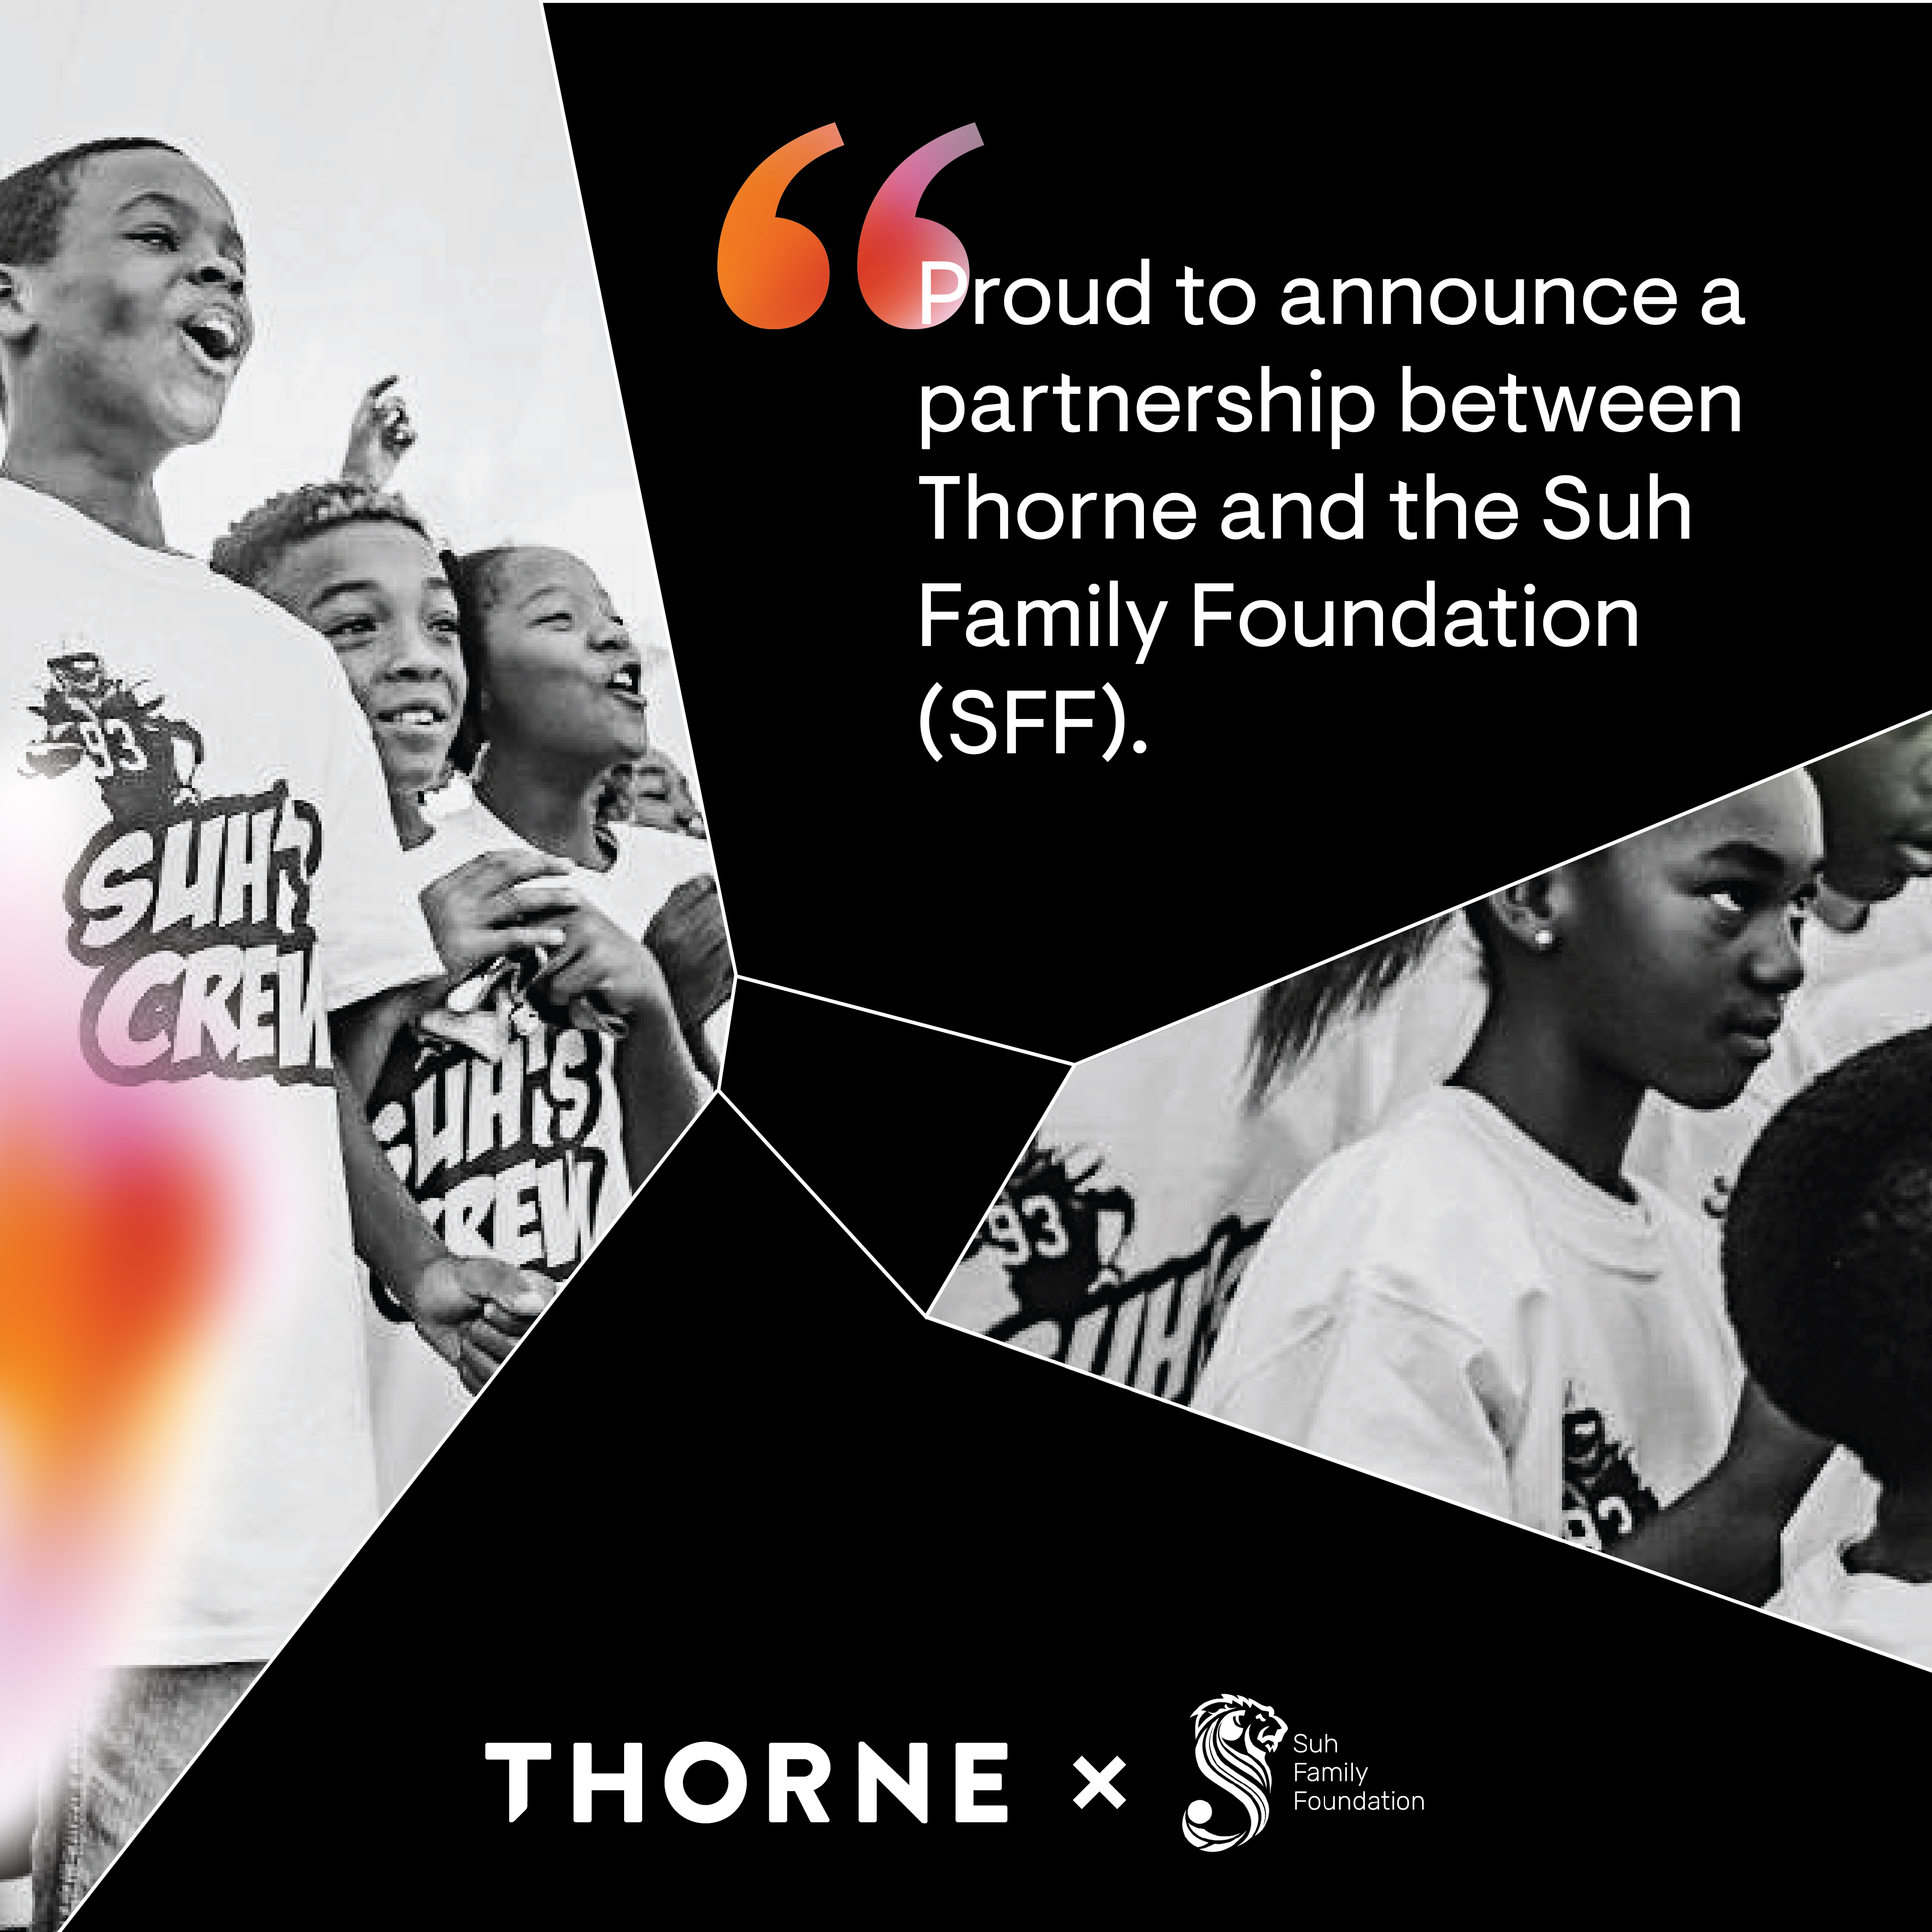 Thorne and Suh partnership announcement